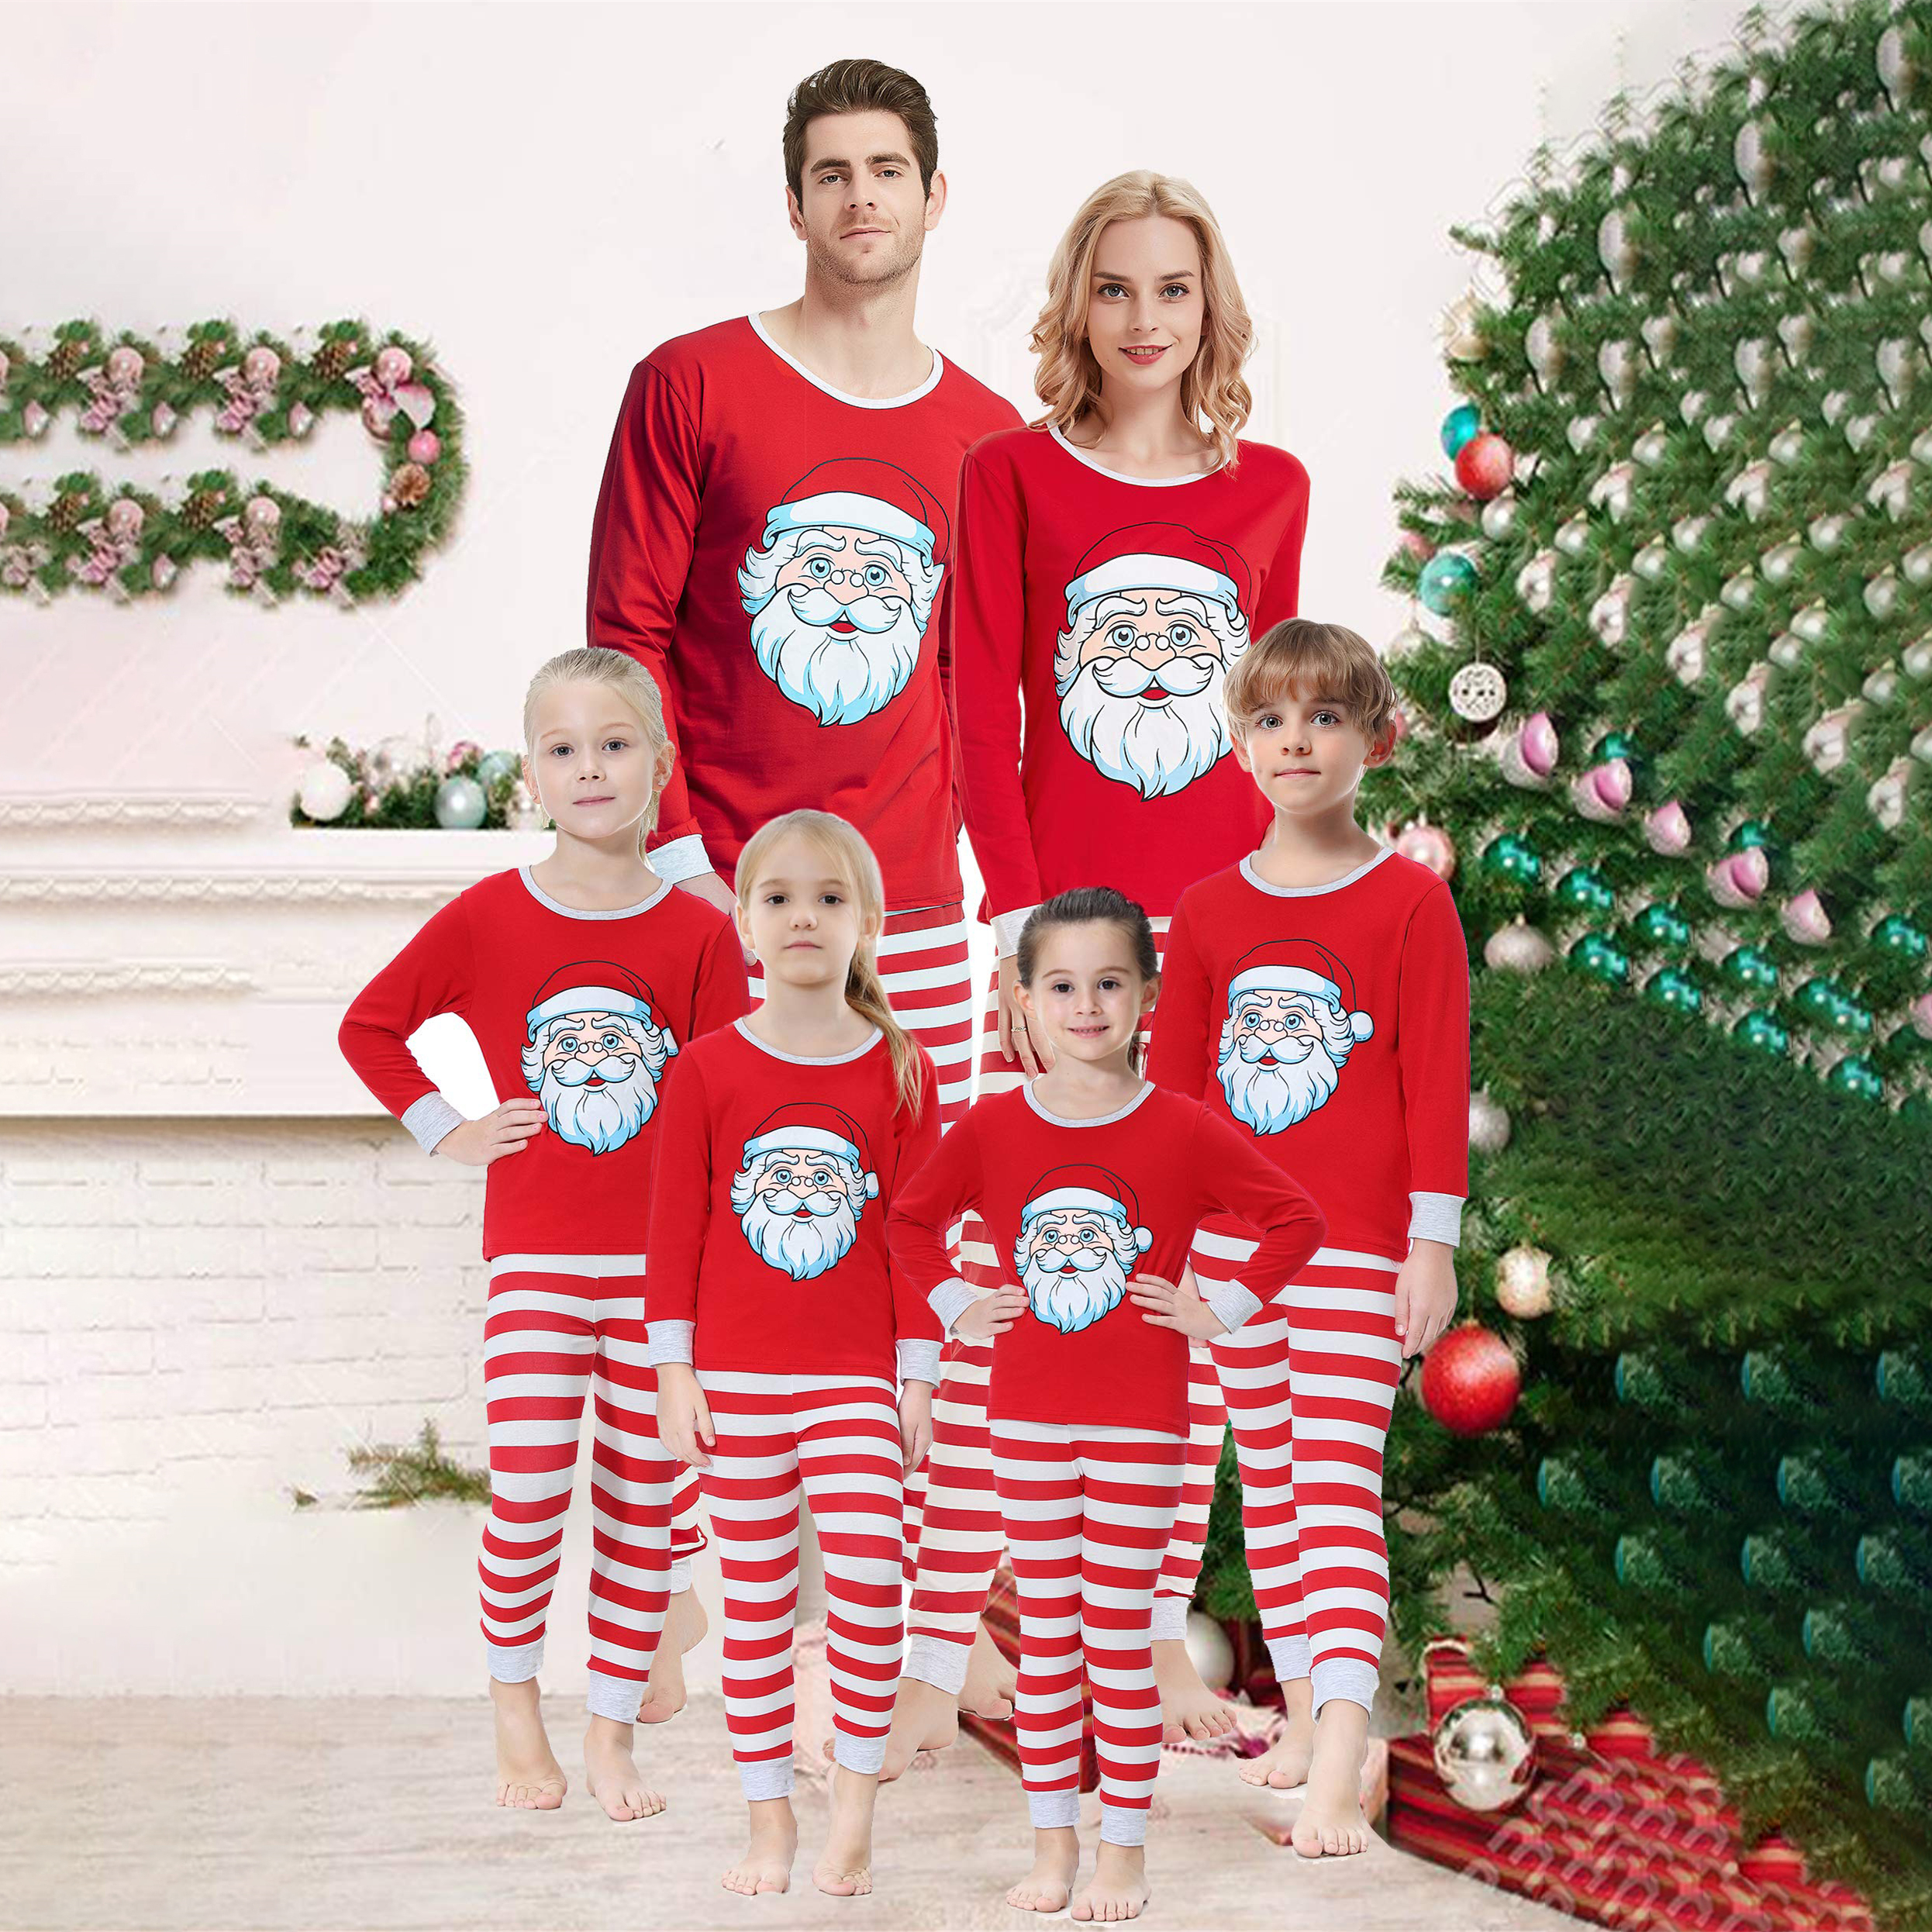 Christmas Pajamas Womens.Details About Matching Christmas Pajamas Women Men Kids Sleepwear Holiday Nightwear Outfits